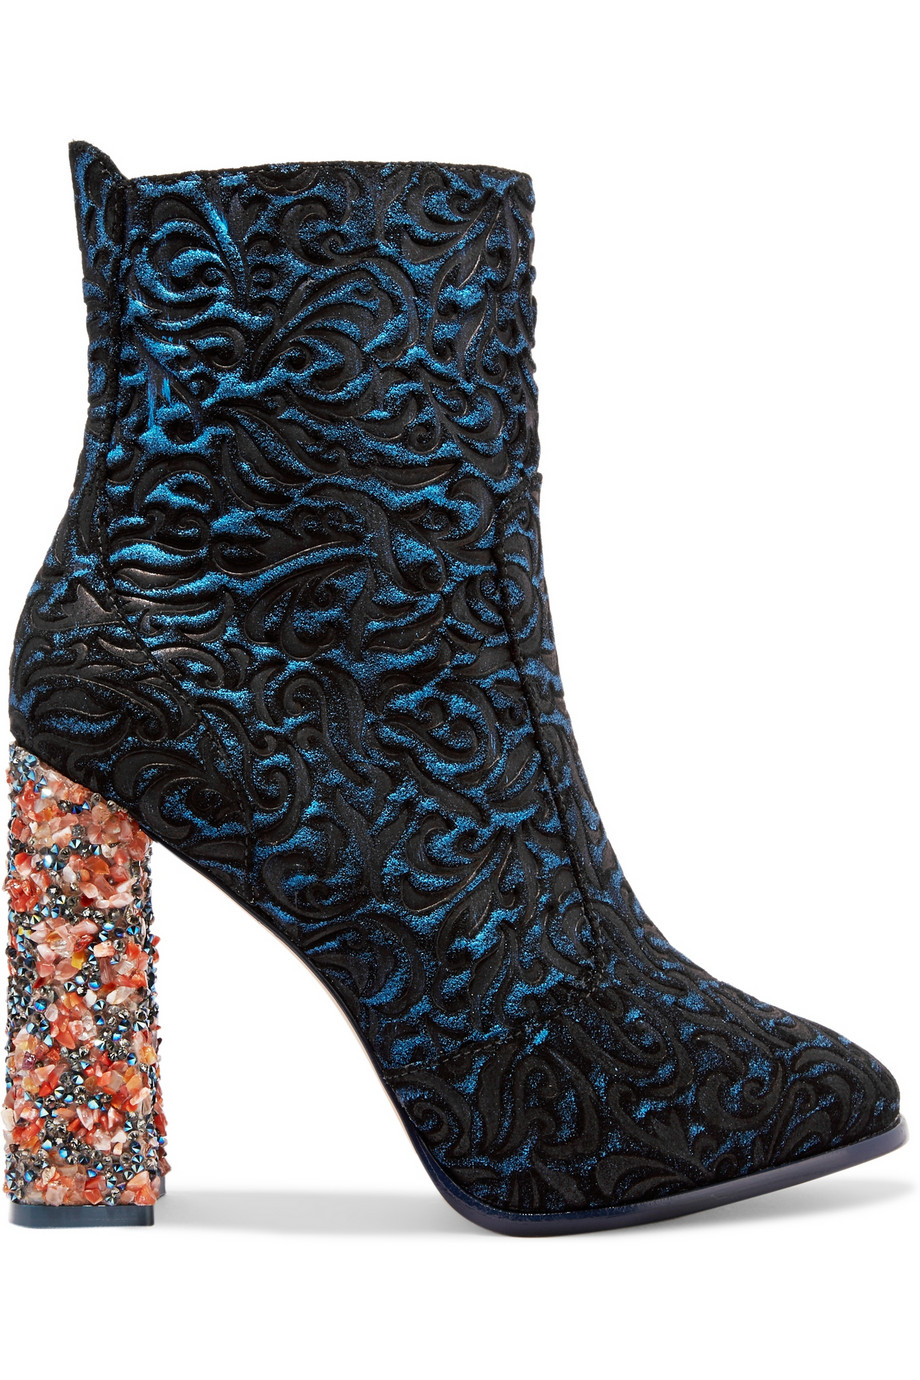 73ad1928c3de Sophia Webster Kendra jacquard-effect leather and suede ankle boots